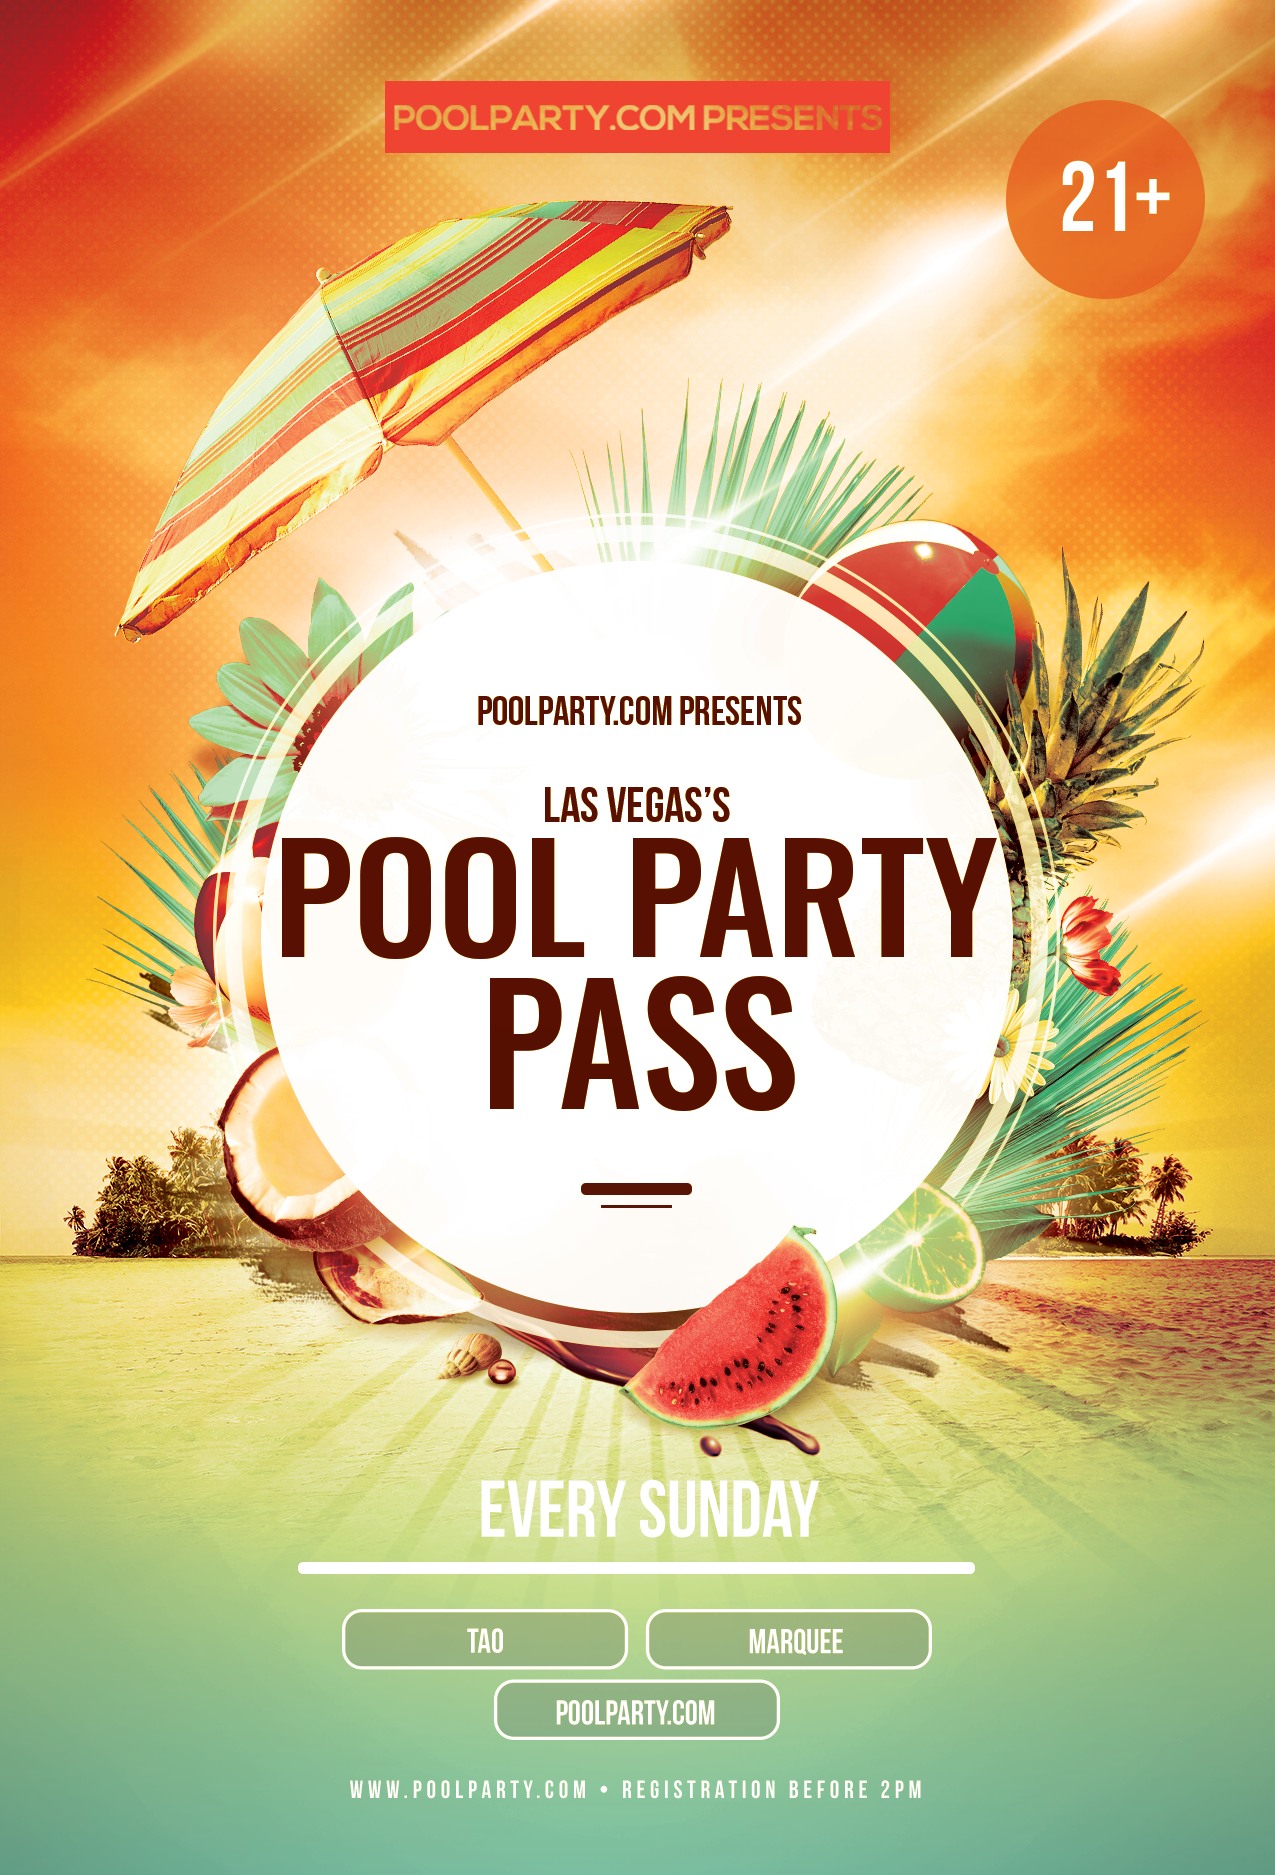 Sunday's Pool Party Pass (July 14th)*NOW INCLUDING FREE ADMISSION TO TAO NIGHTCLUB*